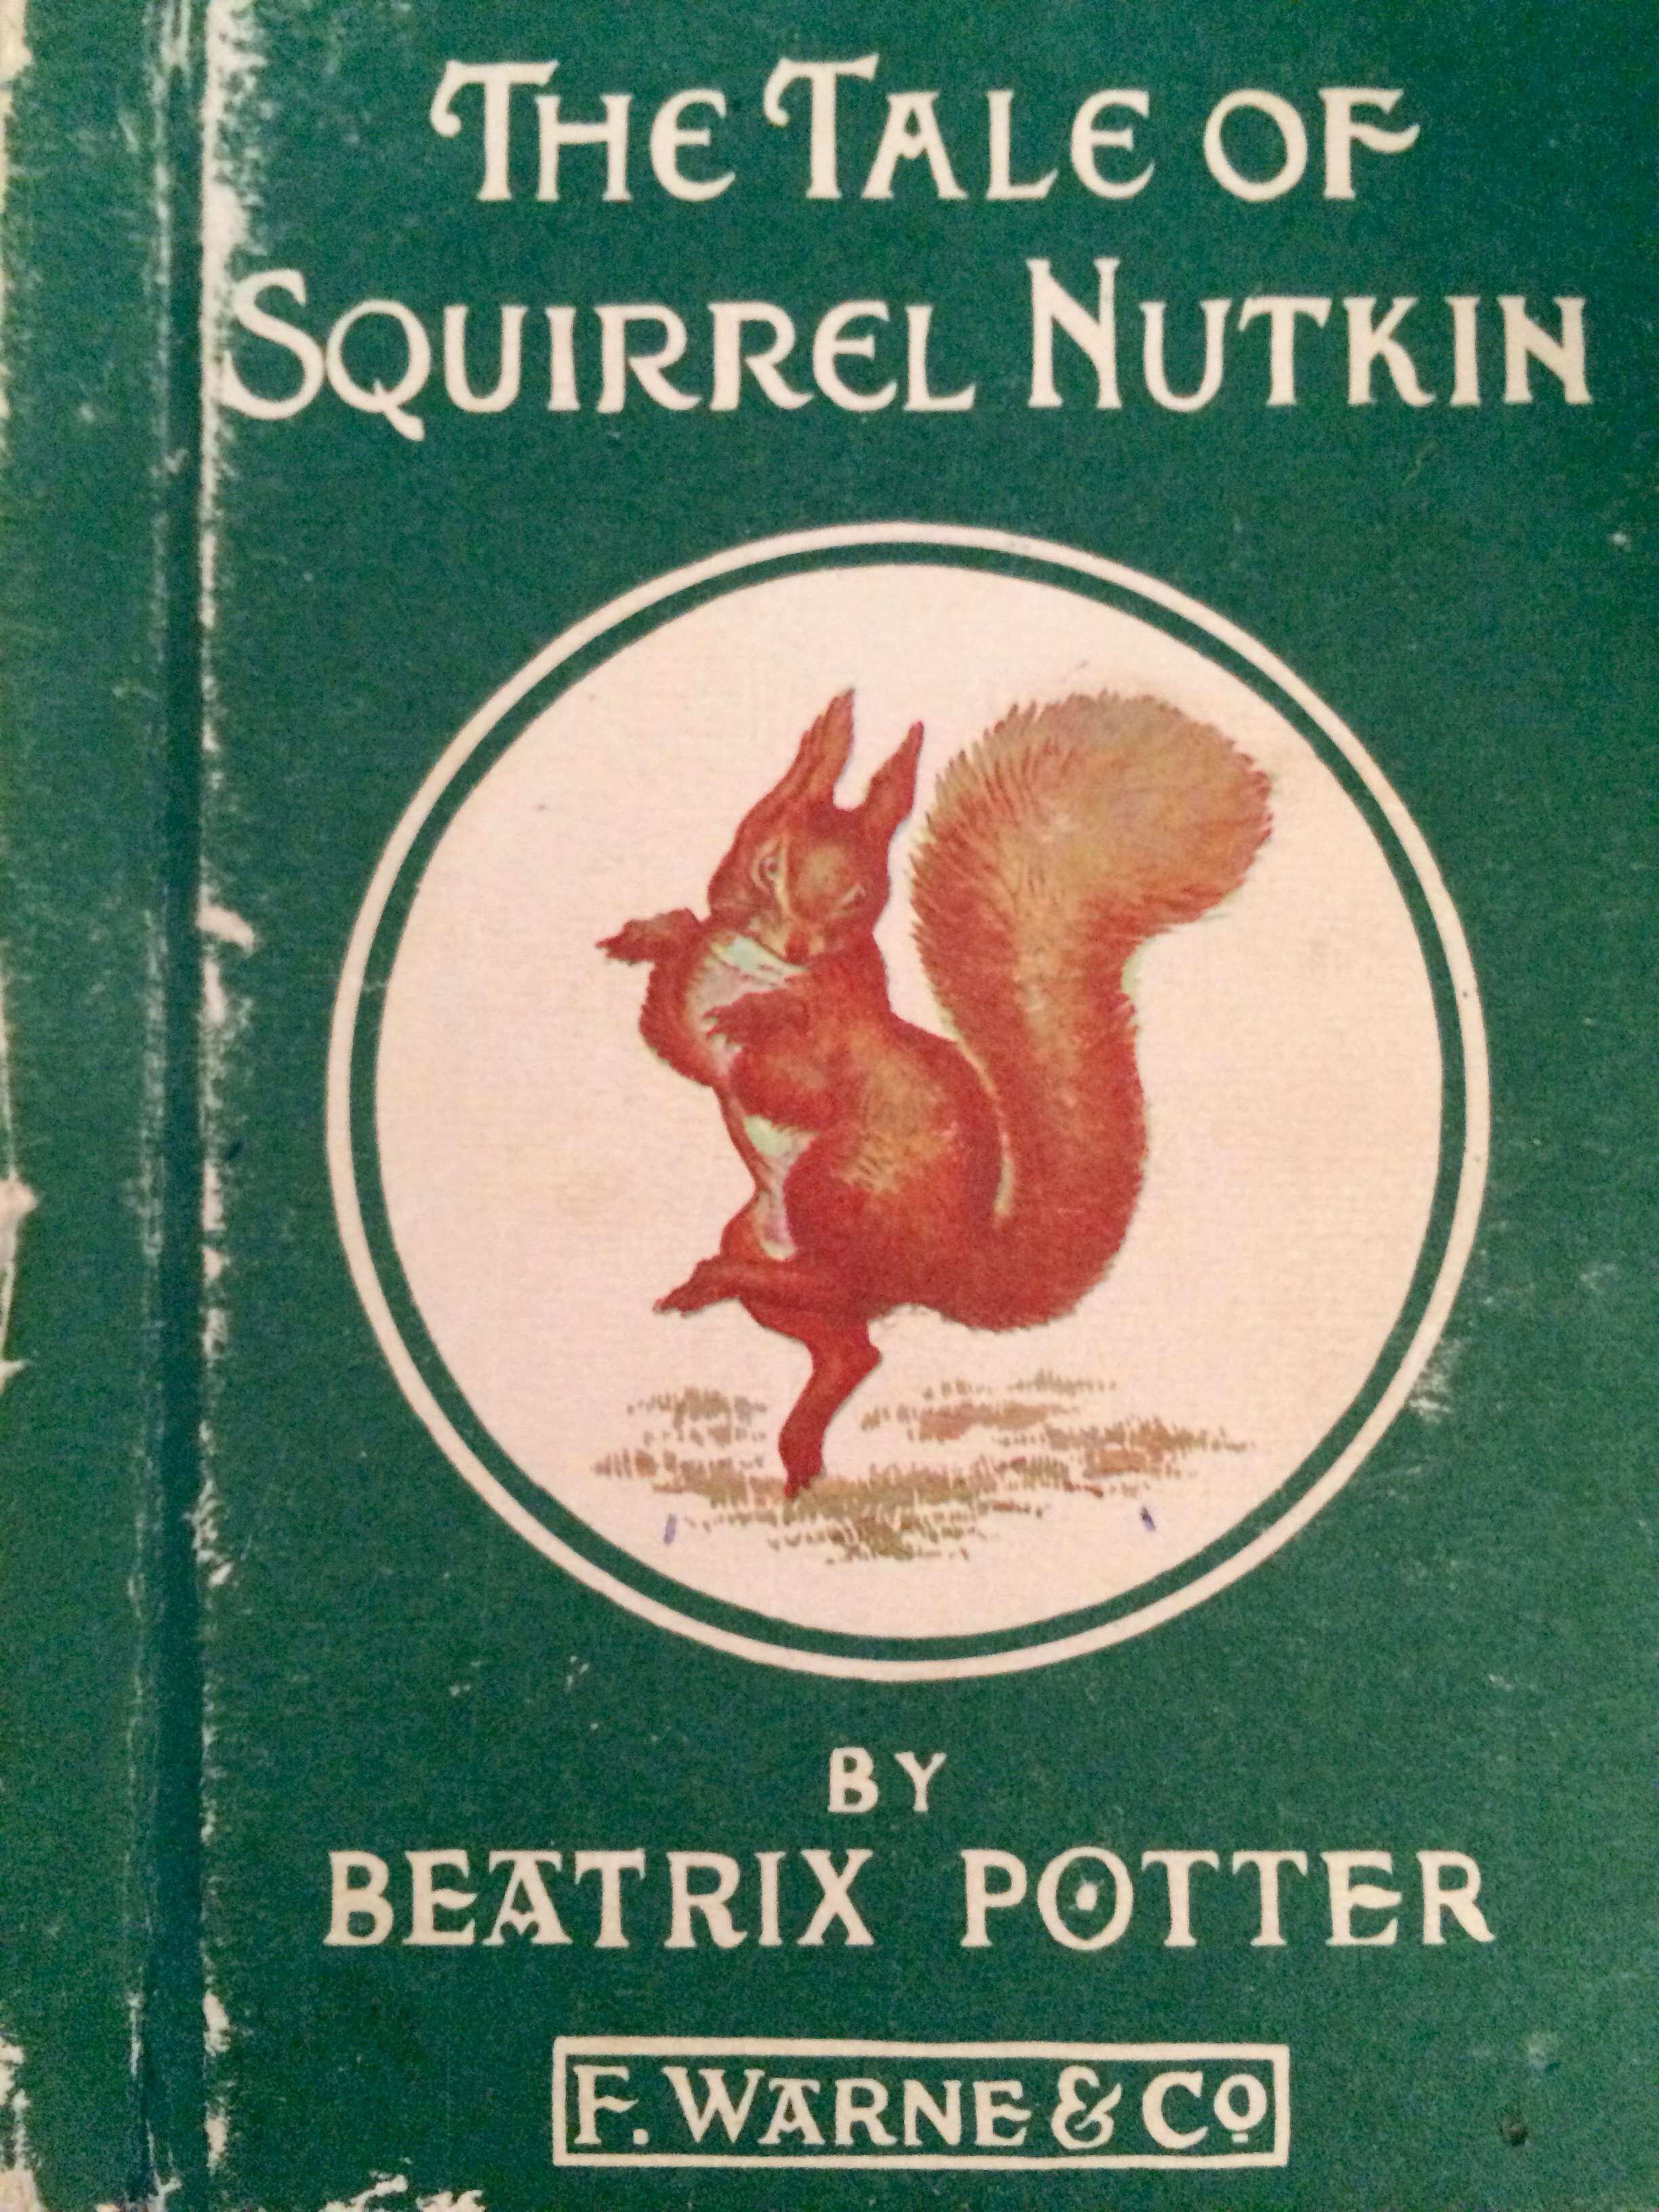 The Tale of Squirrel Nutkin by Beatrix Potter given to Lisa in 1970 by her maternal grandparents